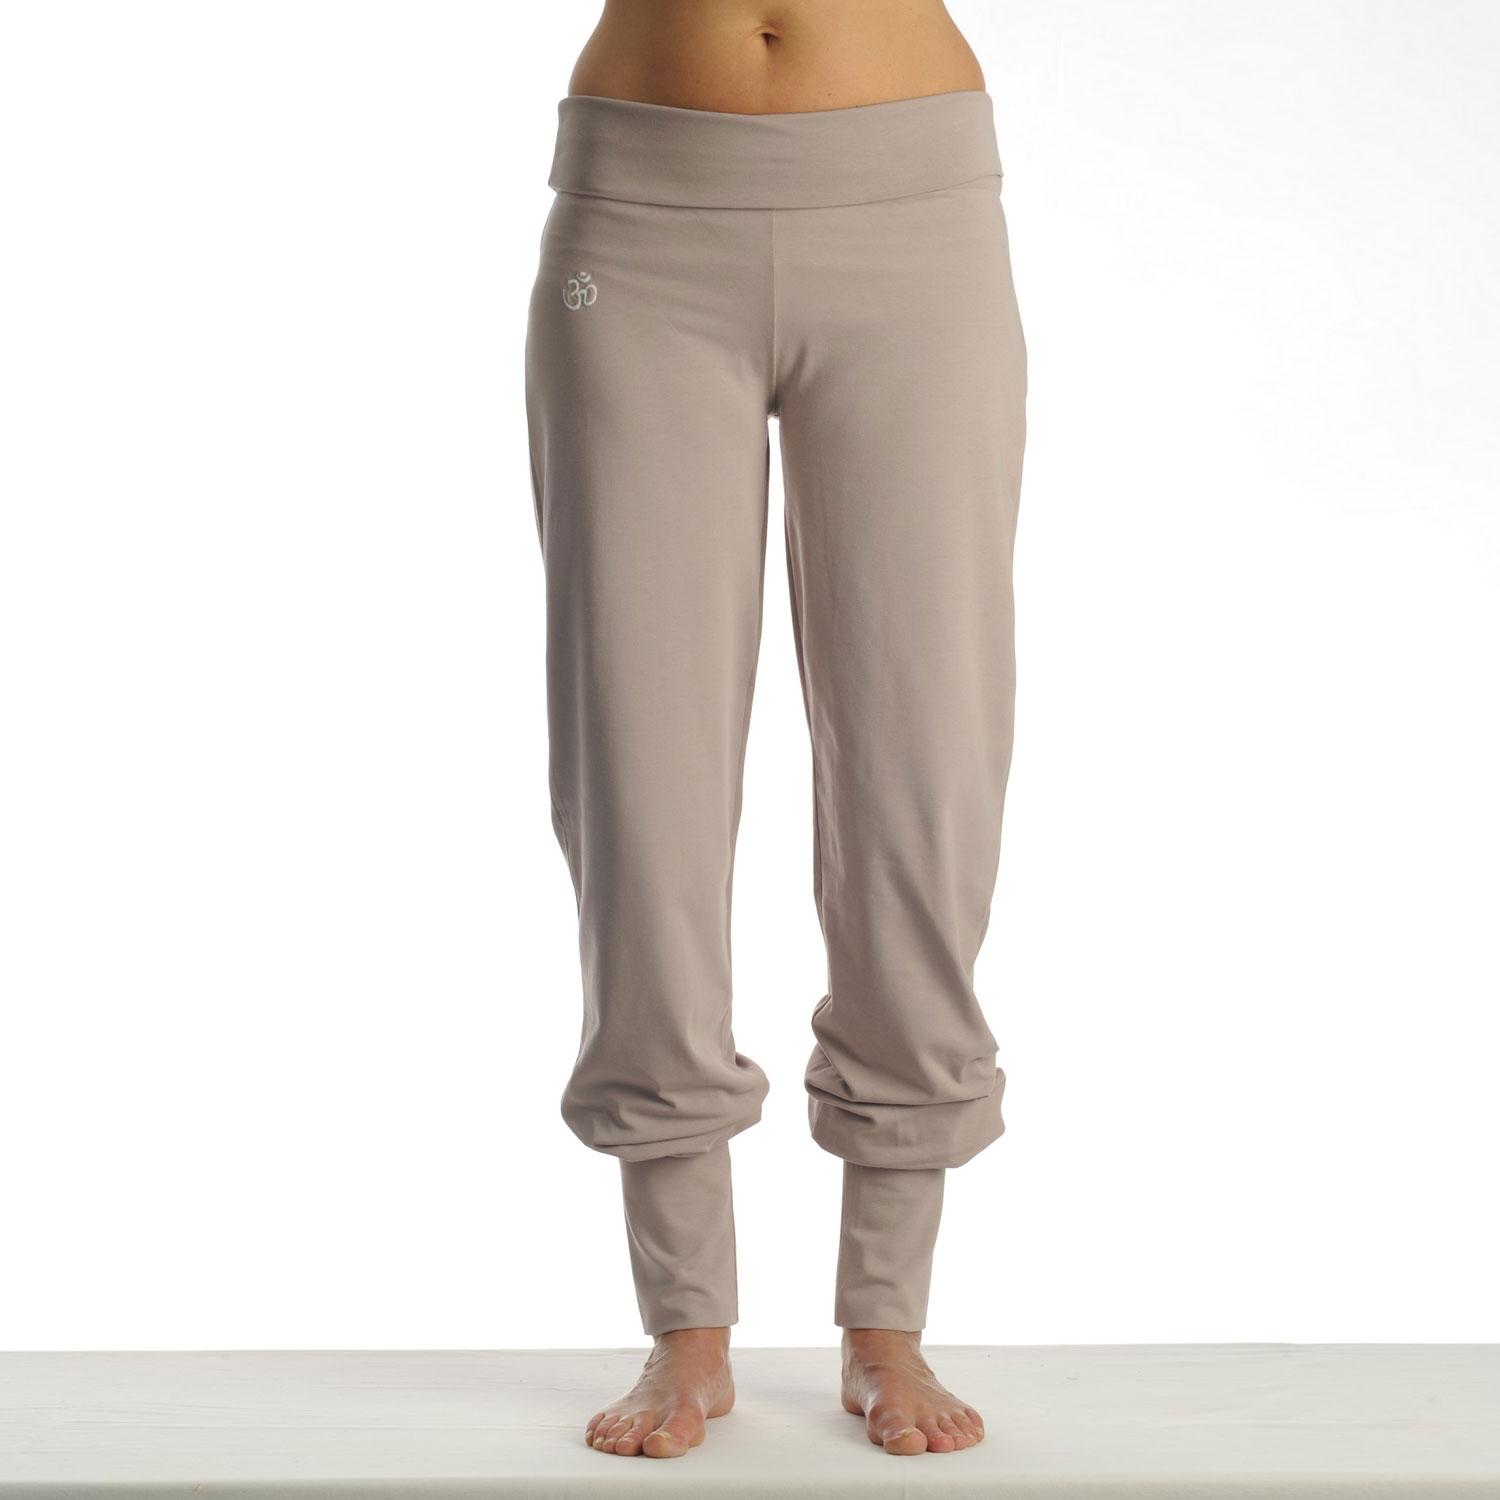 Yoga trousers Devata, Sphinx